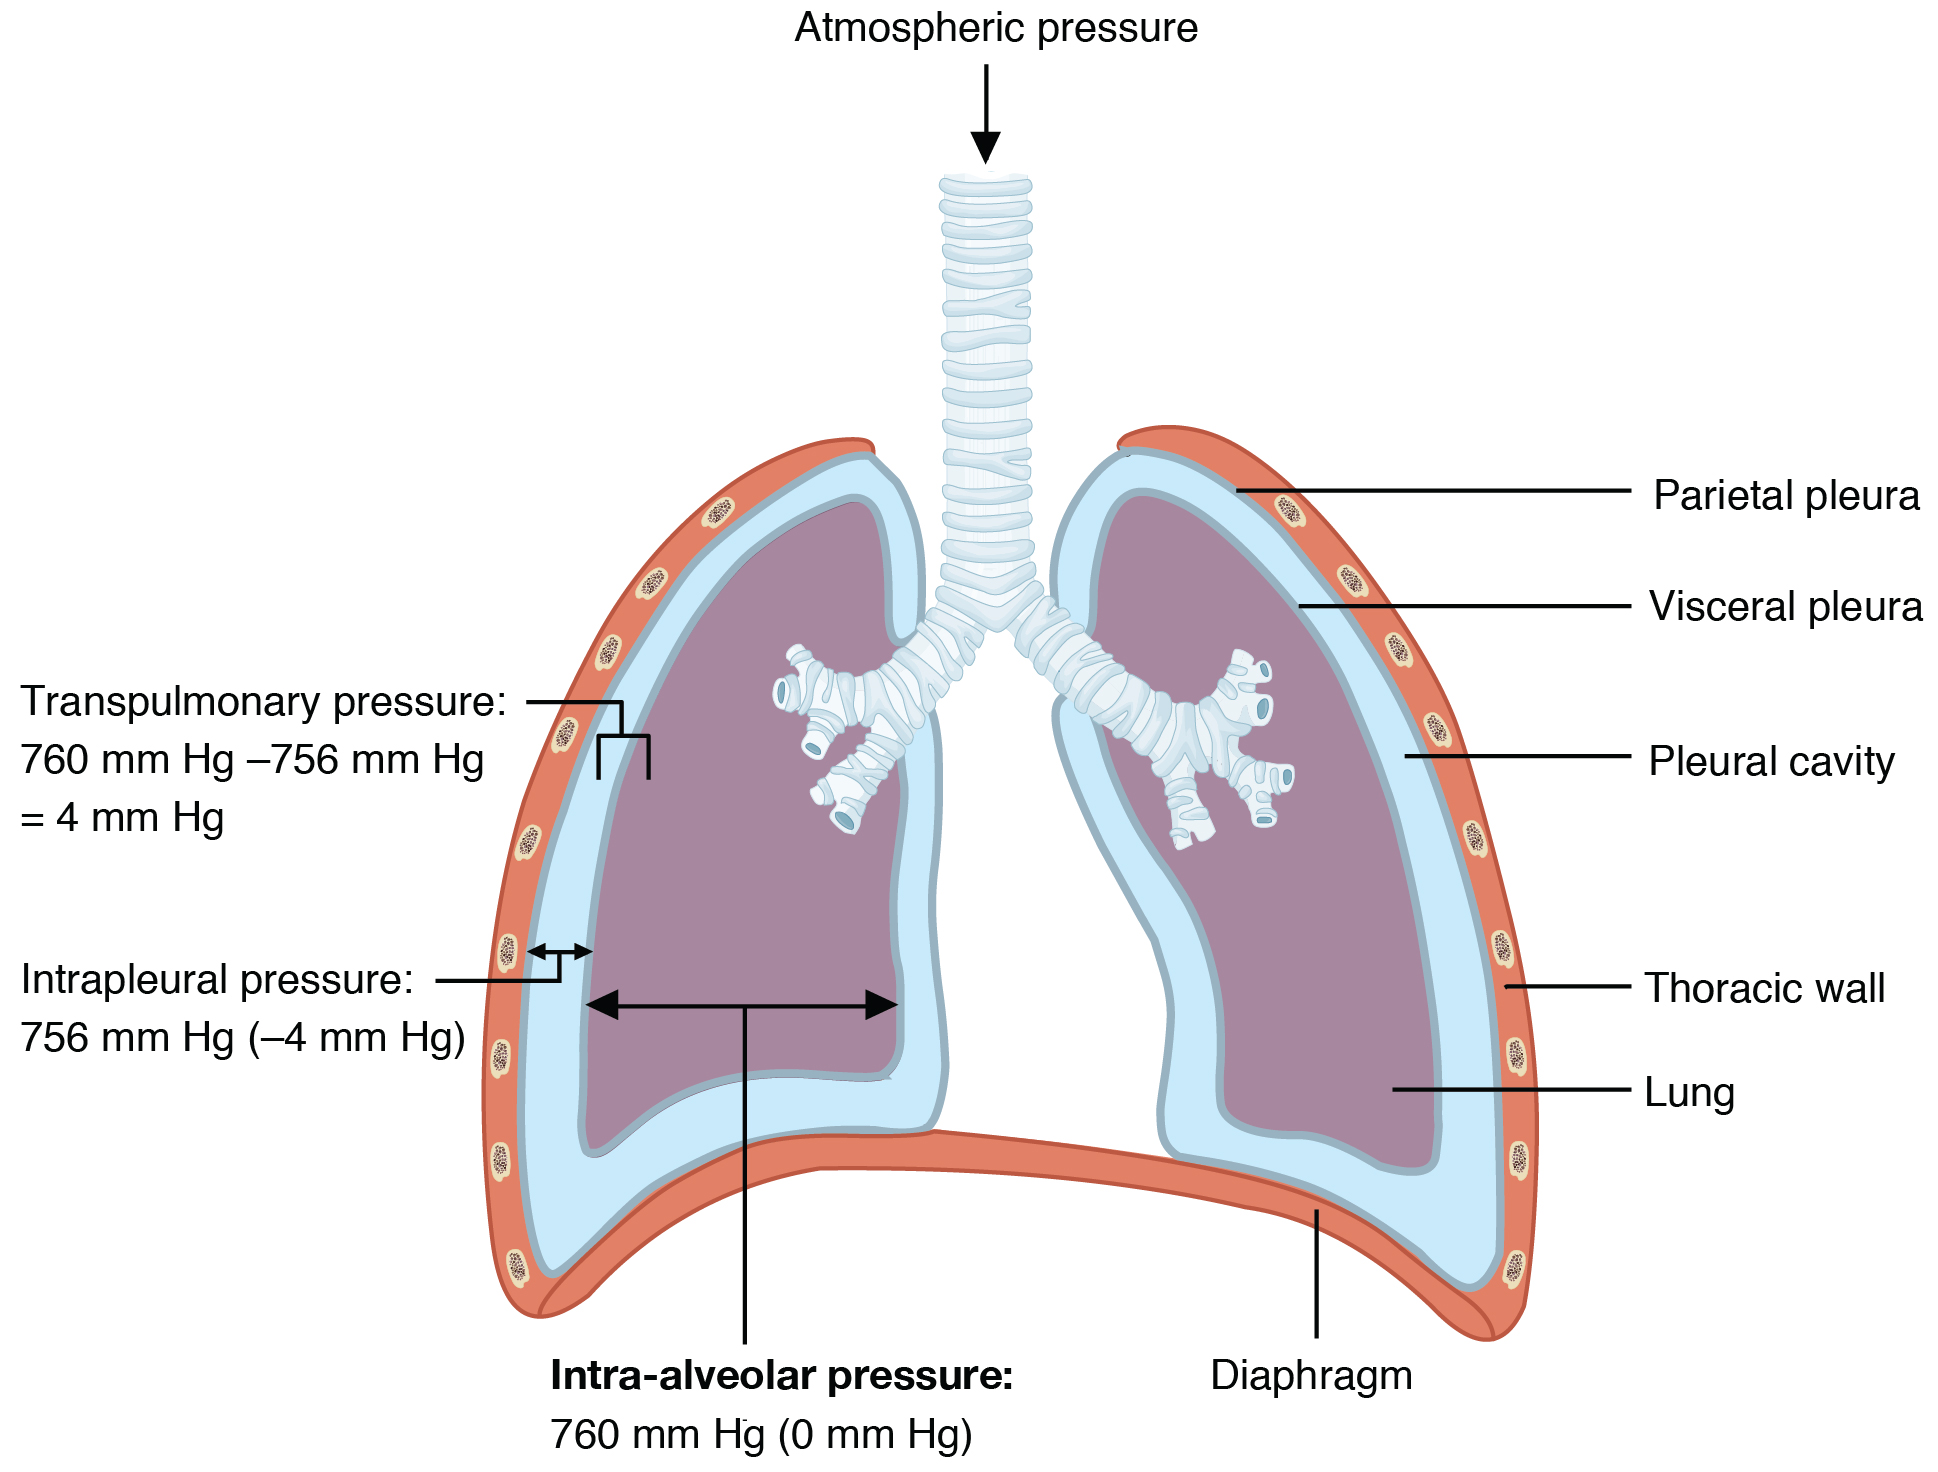 This diagram shows the lungs and the air pressure in different regions.